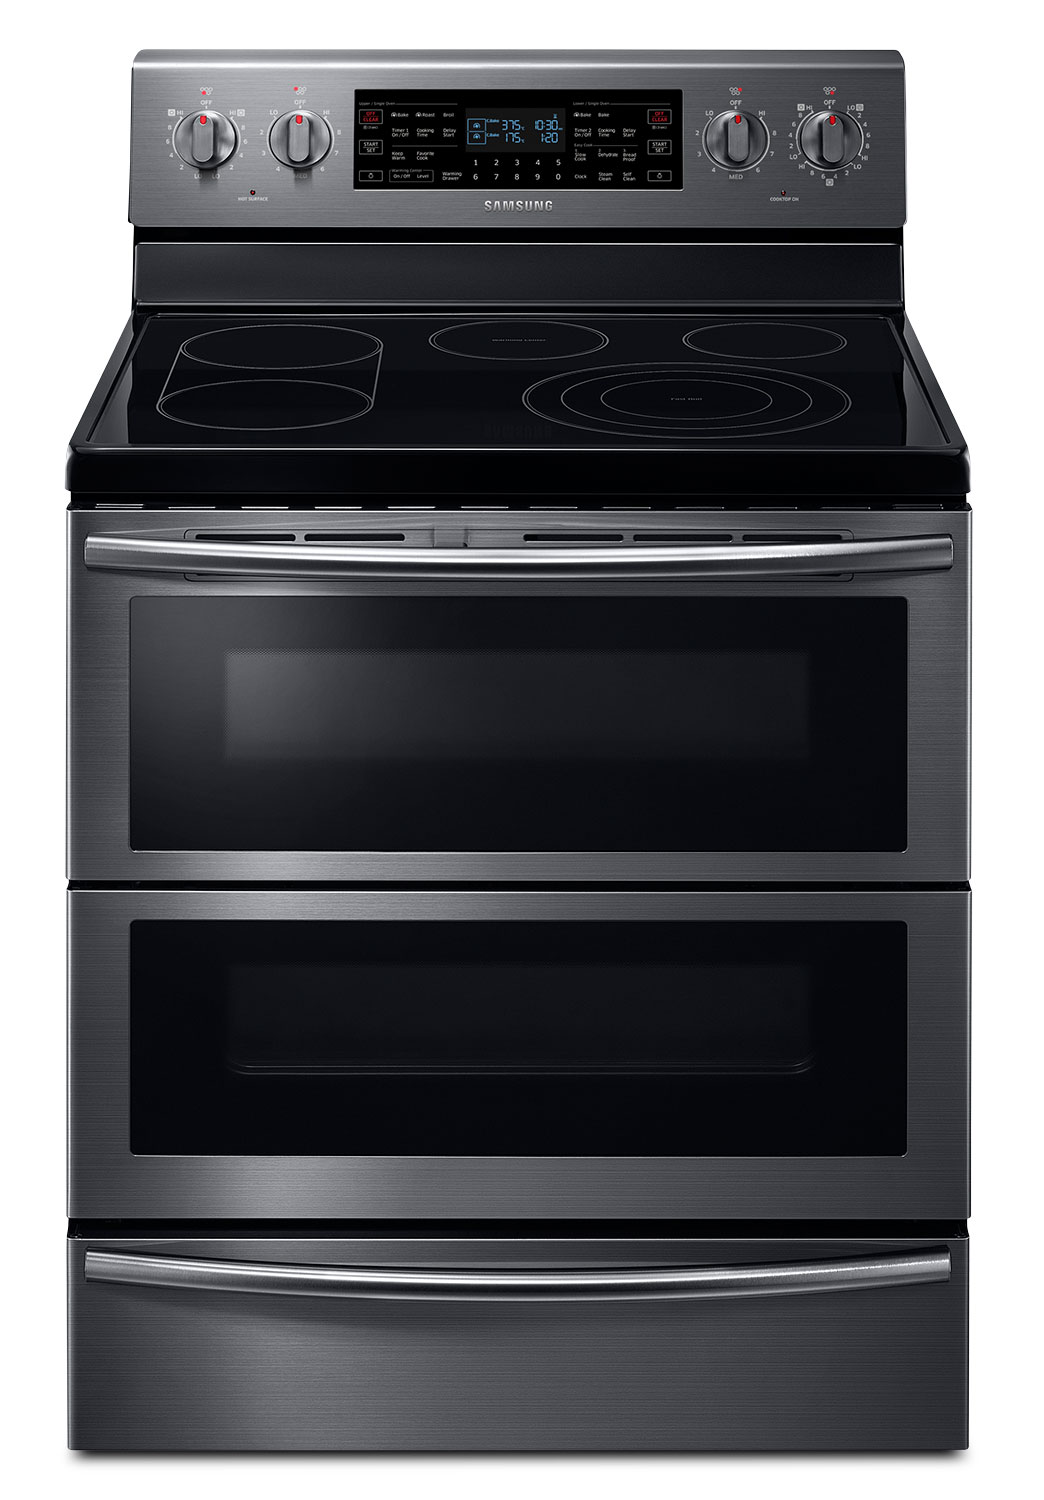 Cooking Products - Samsung Black Stainless Steel Freestanding Electric Convection Range (5.9 Cu. Ft.) - NE59J7850WG/AC